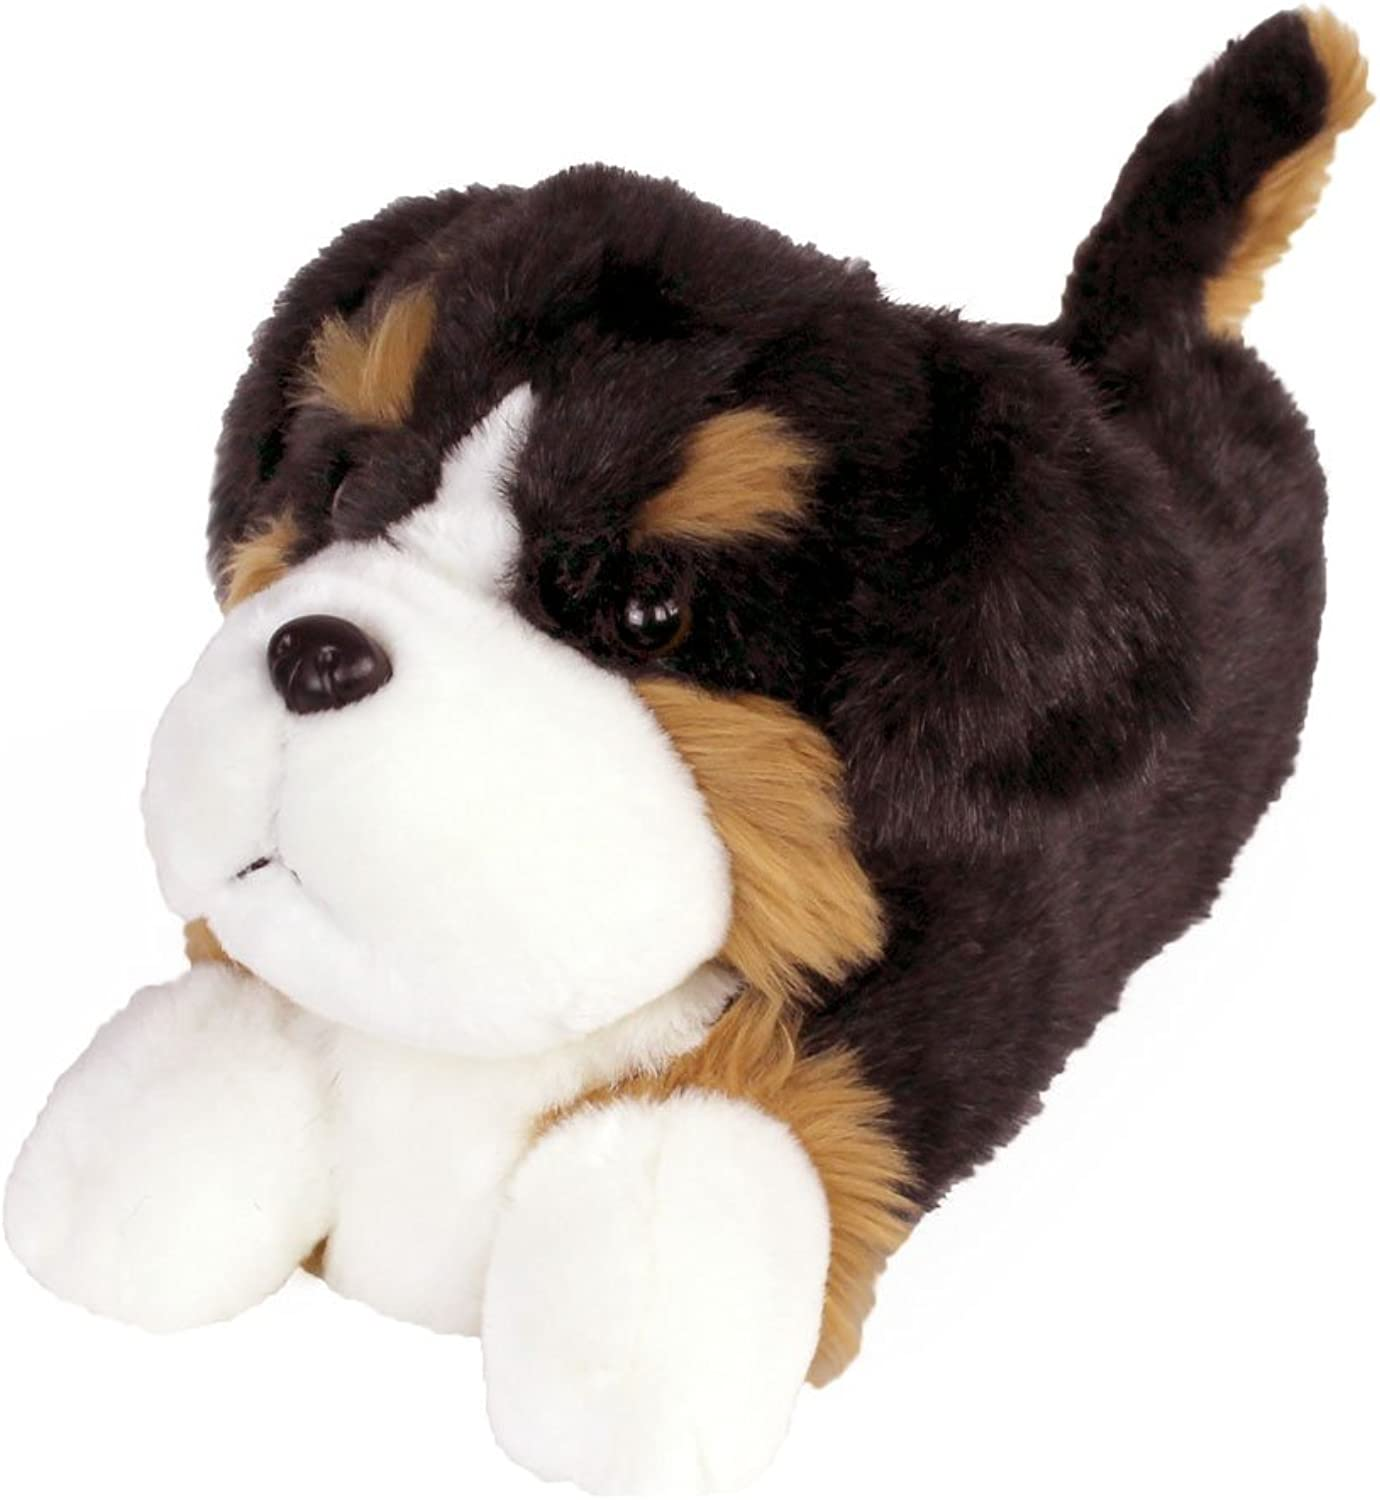 Bernese Mountain Dog Slippers - Plush Animal Slippers